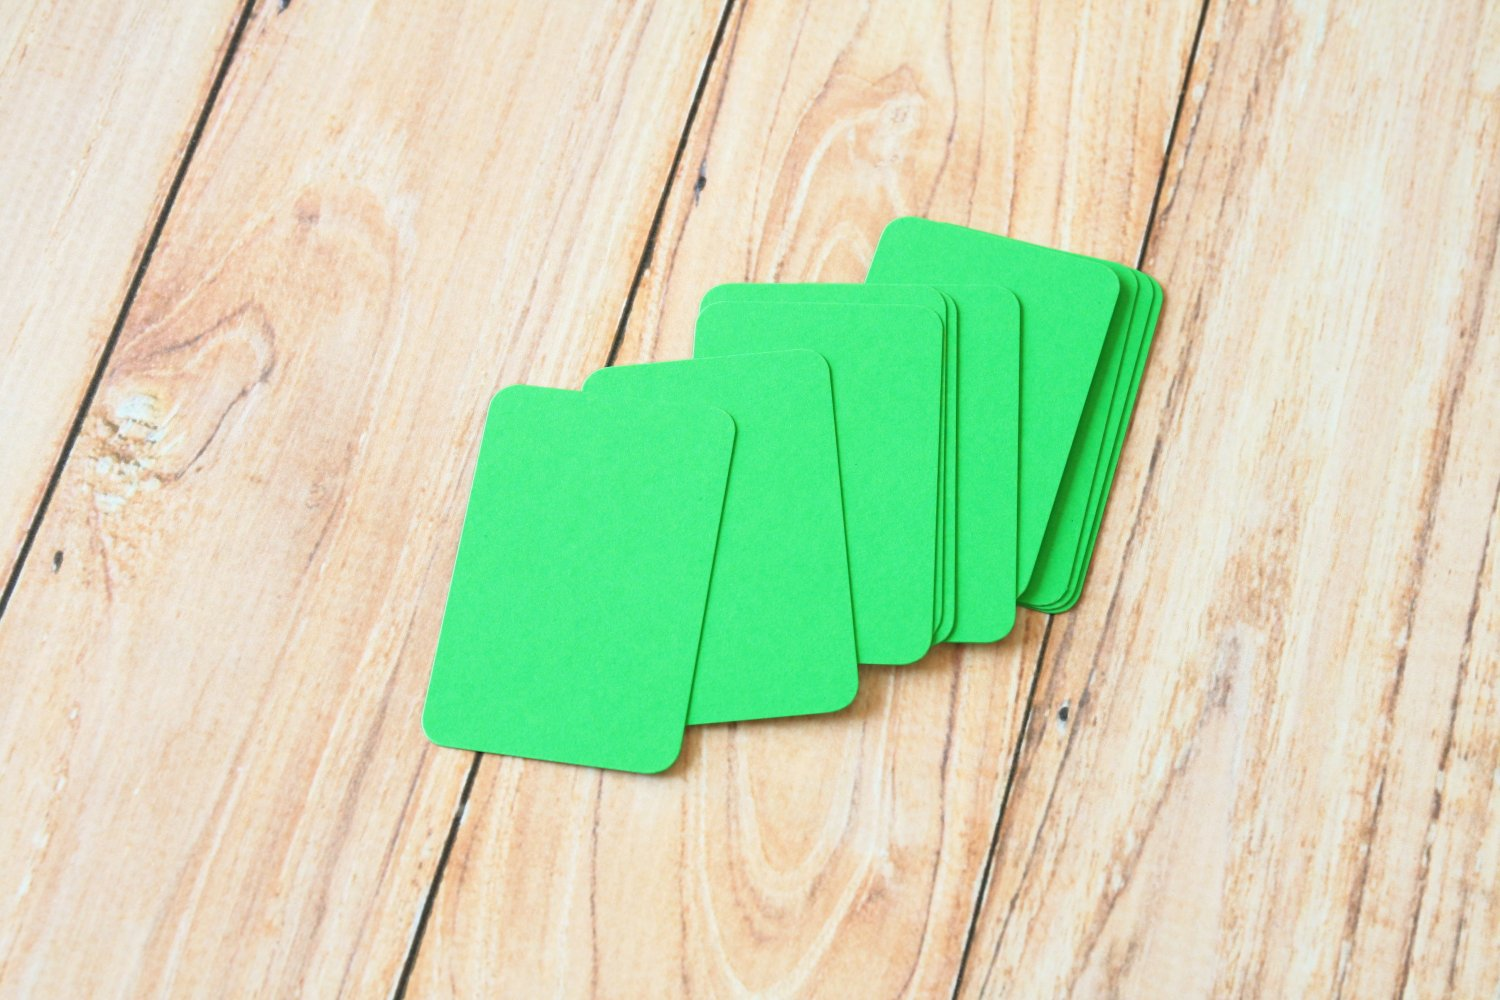 Spring Green blank business cards